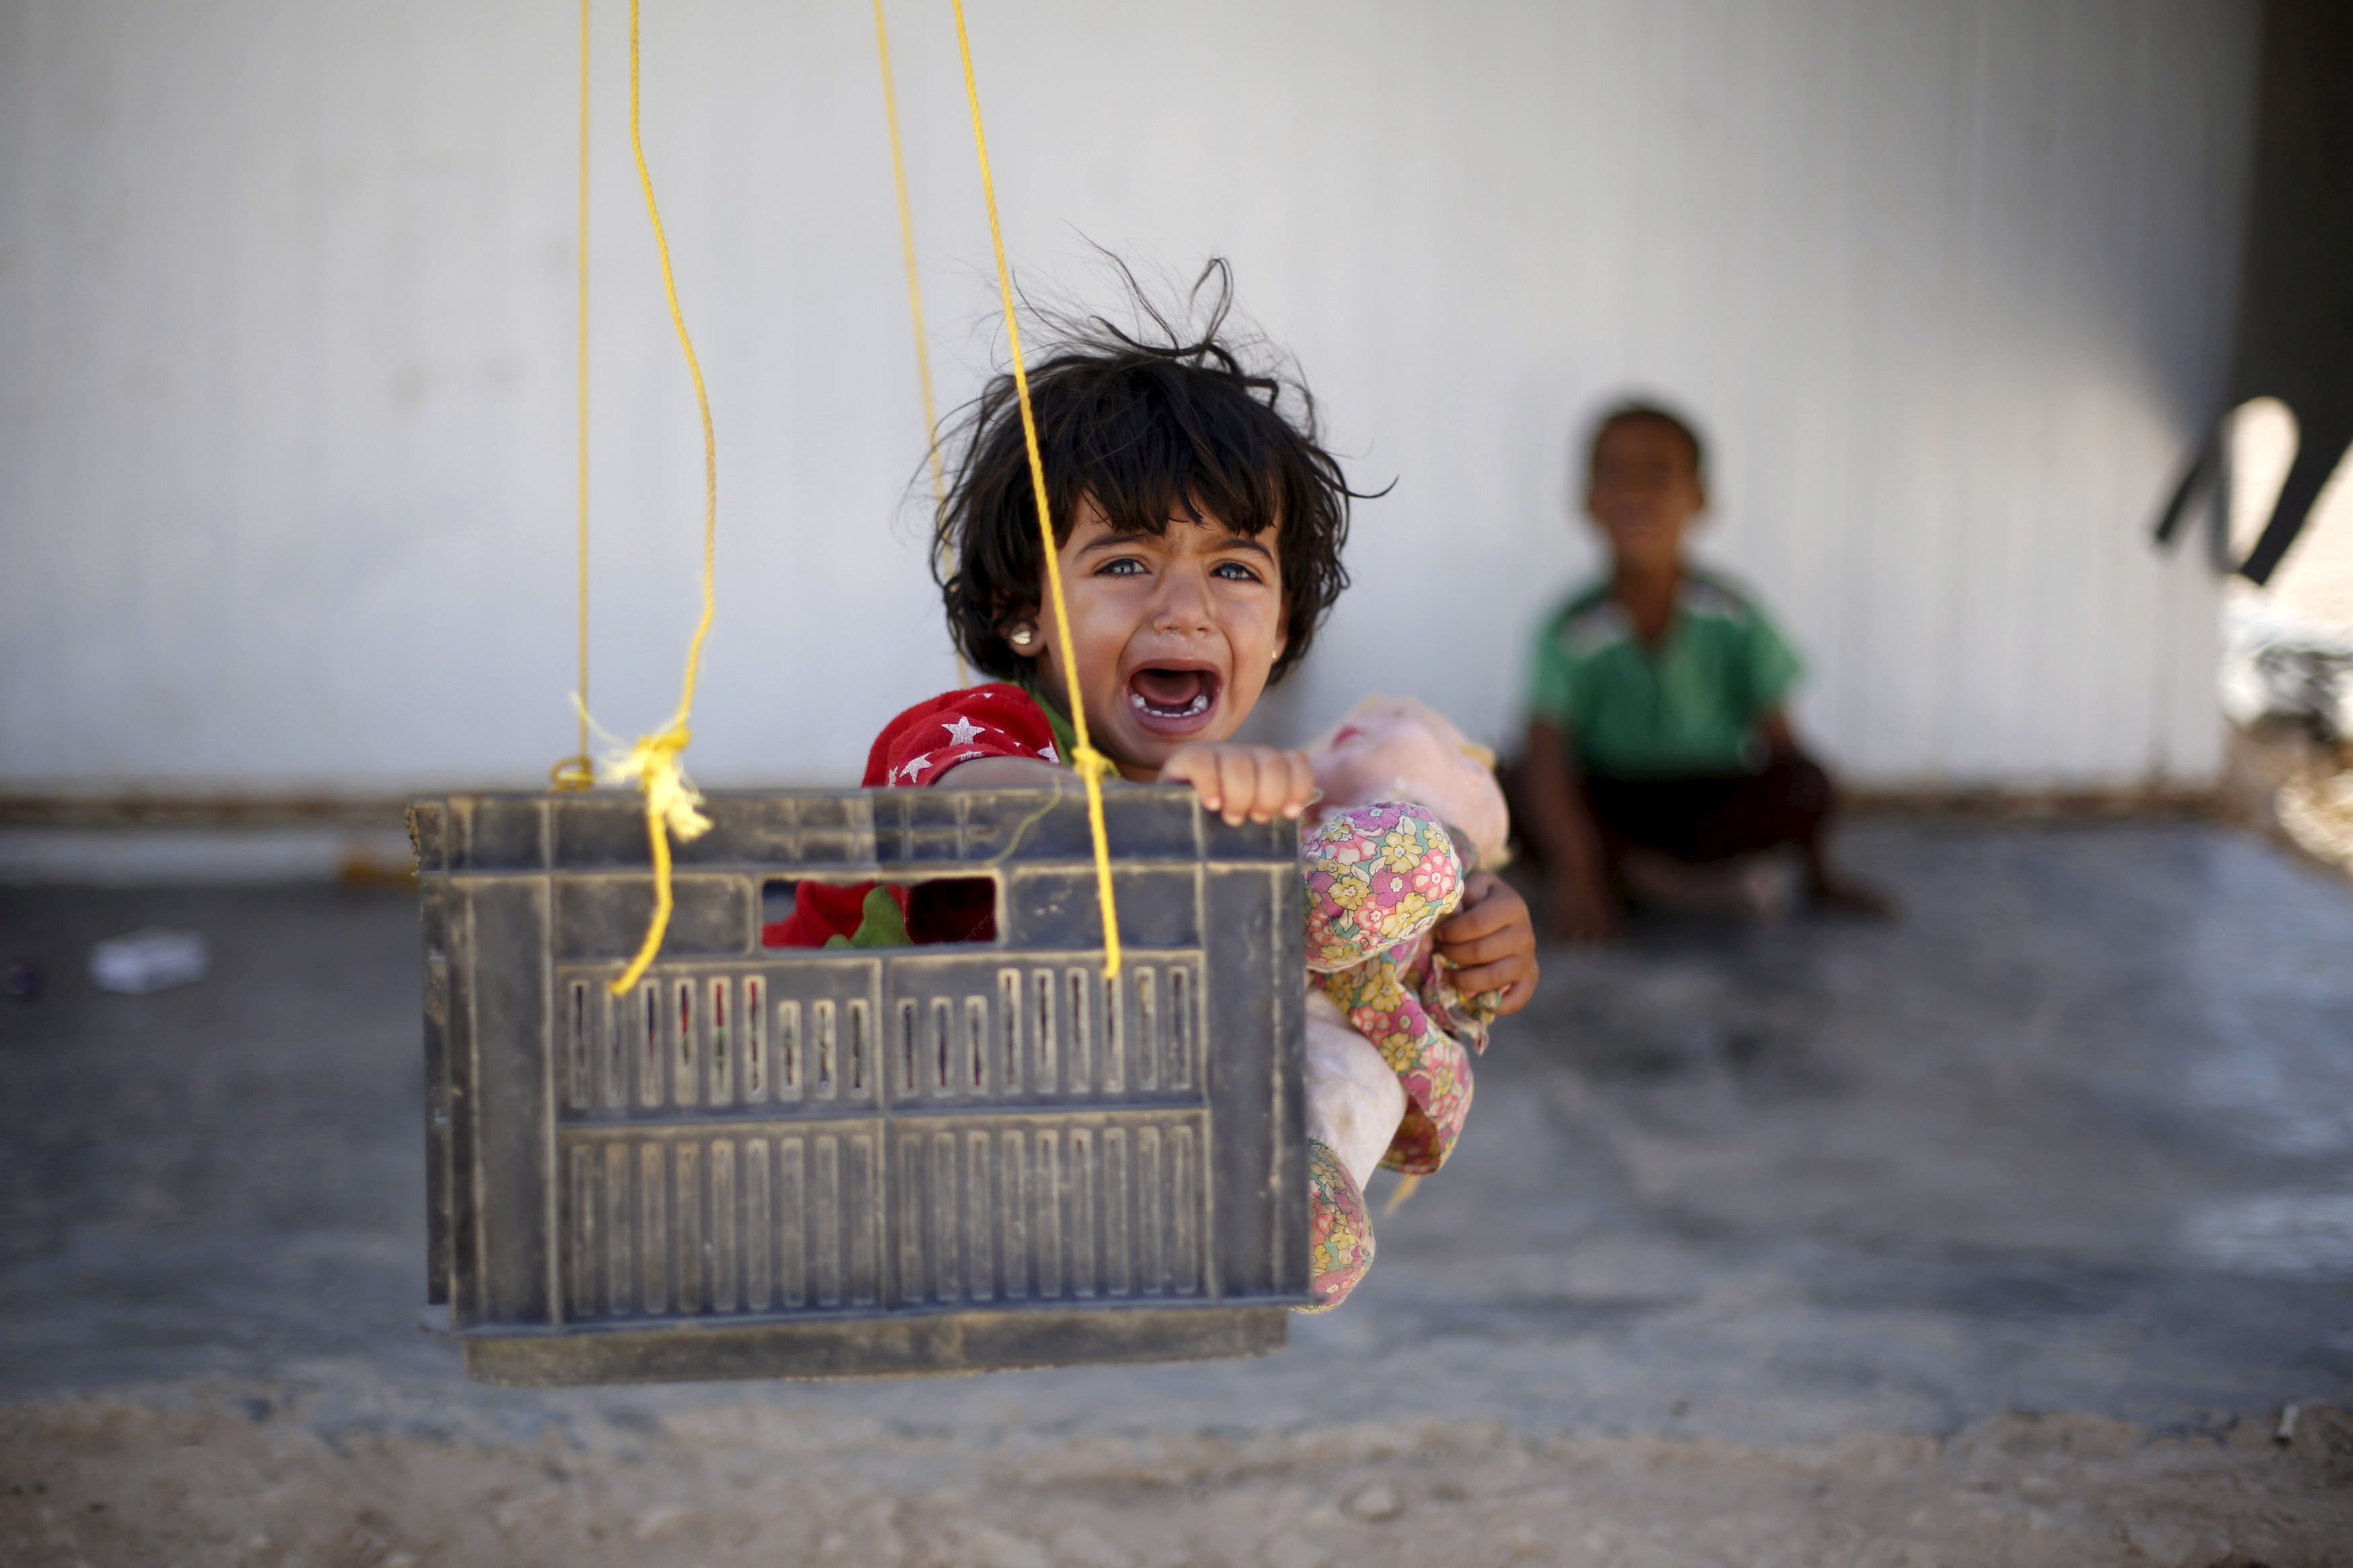 A Syrian refugee child reacts while sitting in a swing in Al Zaatari refugee camp, in the Jordanian city of Mafraq, near the border with Syria, September 19, 2015.